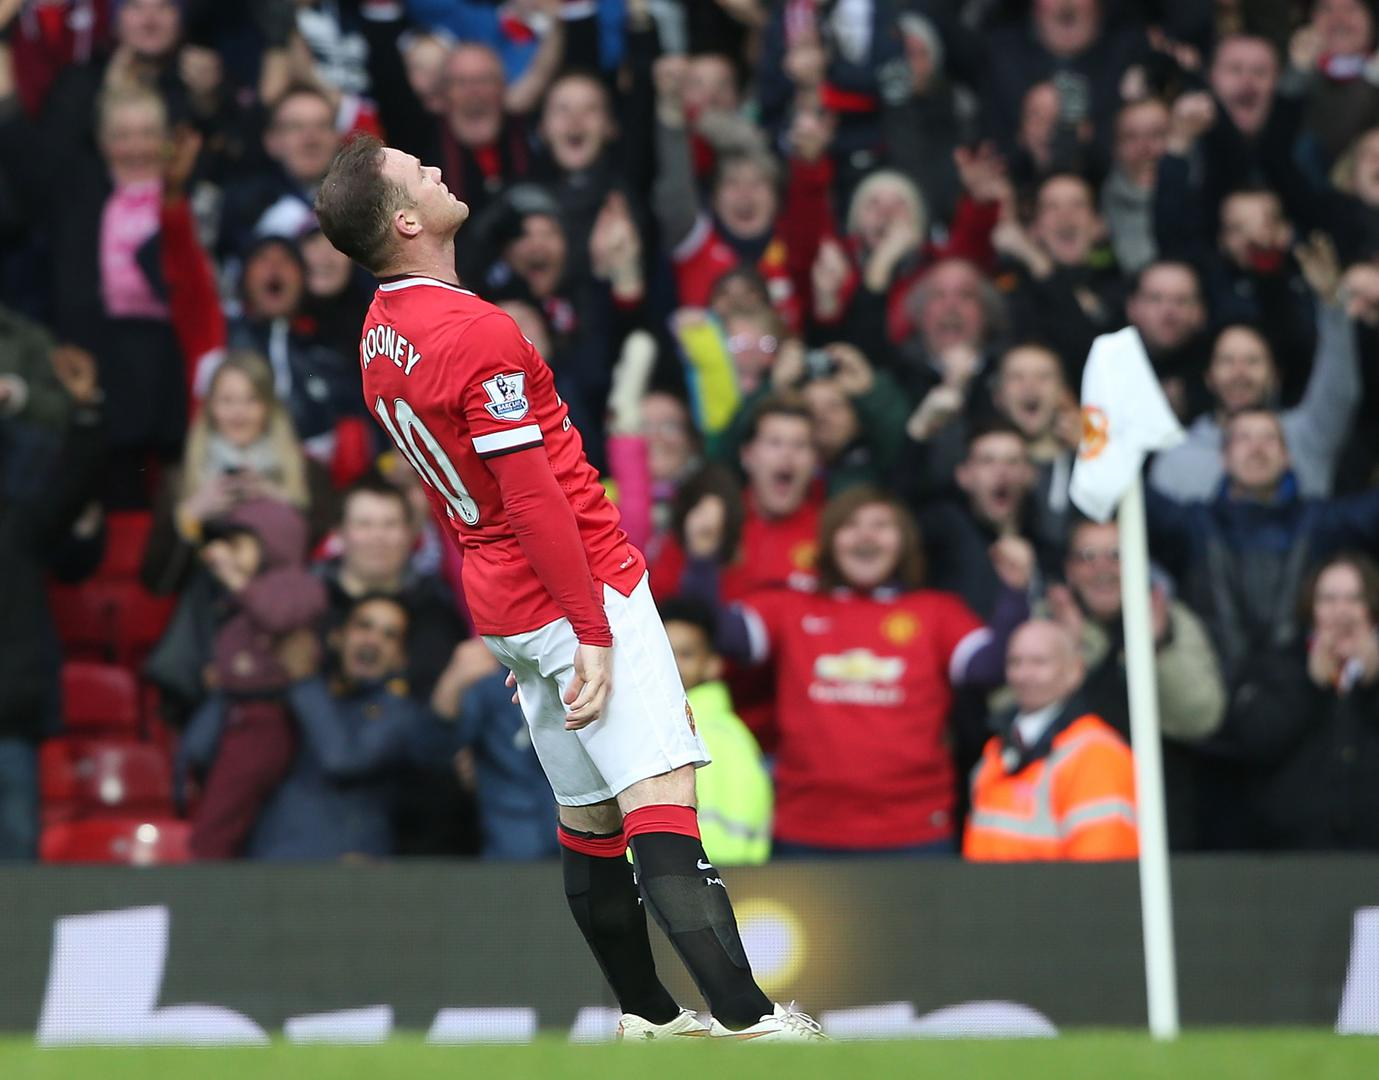 Wayne Rooney celebrating a goal against Tottenham at Old Trafford in 2015.,